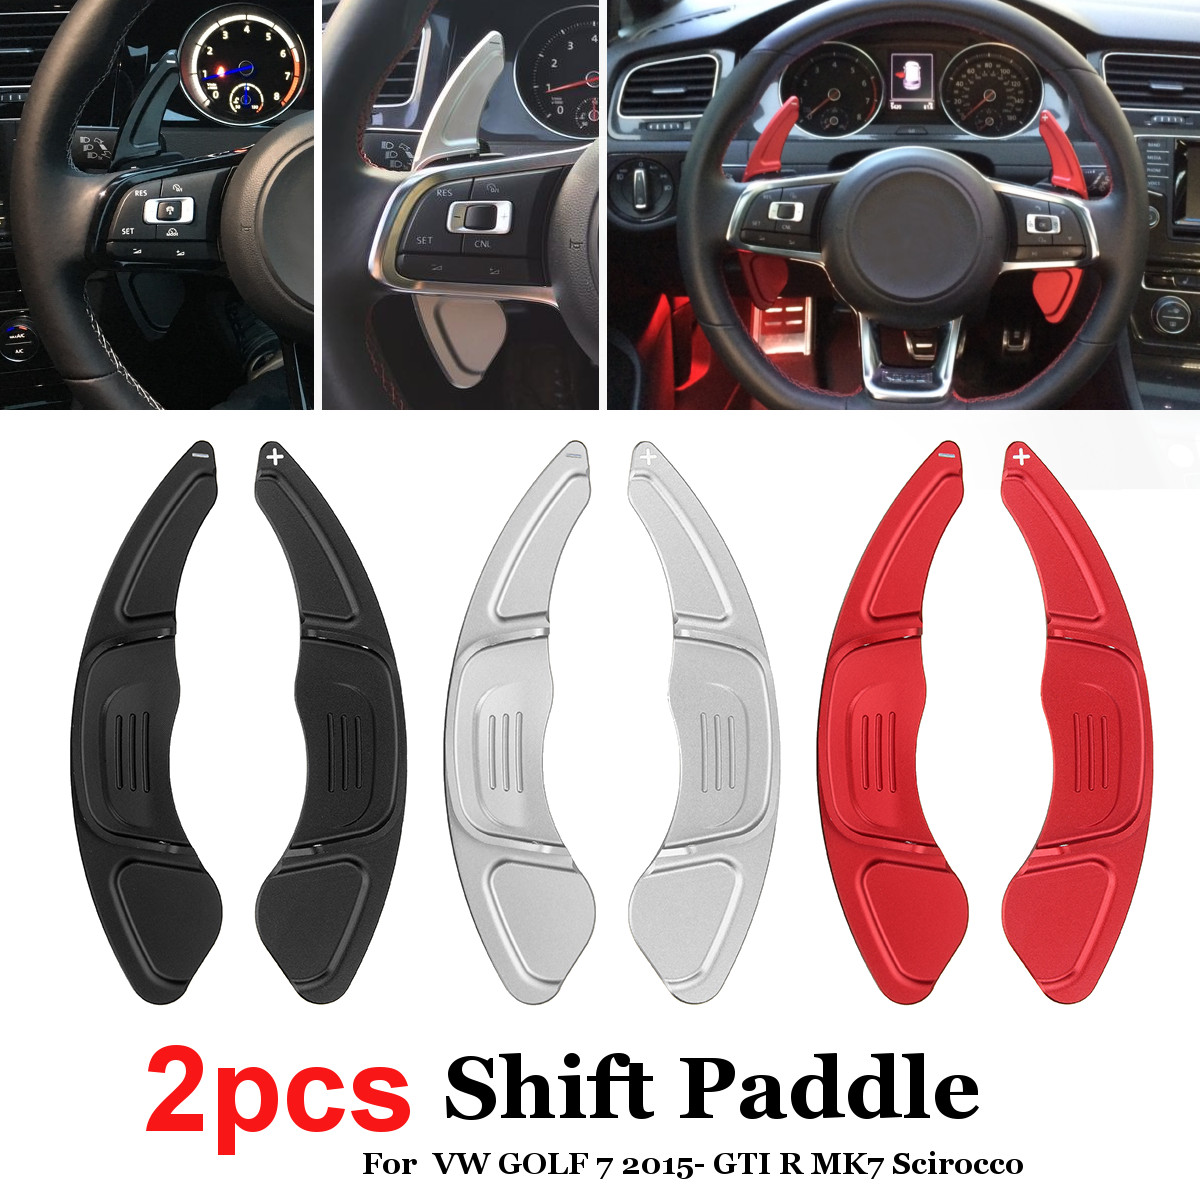 2pcs Car Aluminum Steering Wheel Shift Paddles Steering Paddle For VW GOLF 7 2015- GTI R MK7 Scirocco2pcs Car Aluminum Steering Wheel Shift Paddles Steering Paddle For VW GOLF 7 2015- GTI R MK7 Scirocco